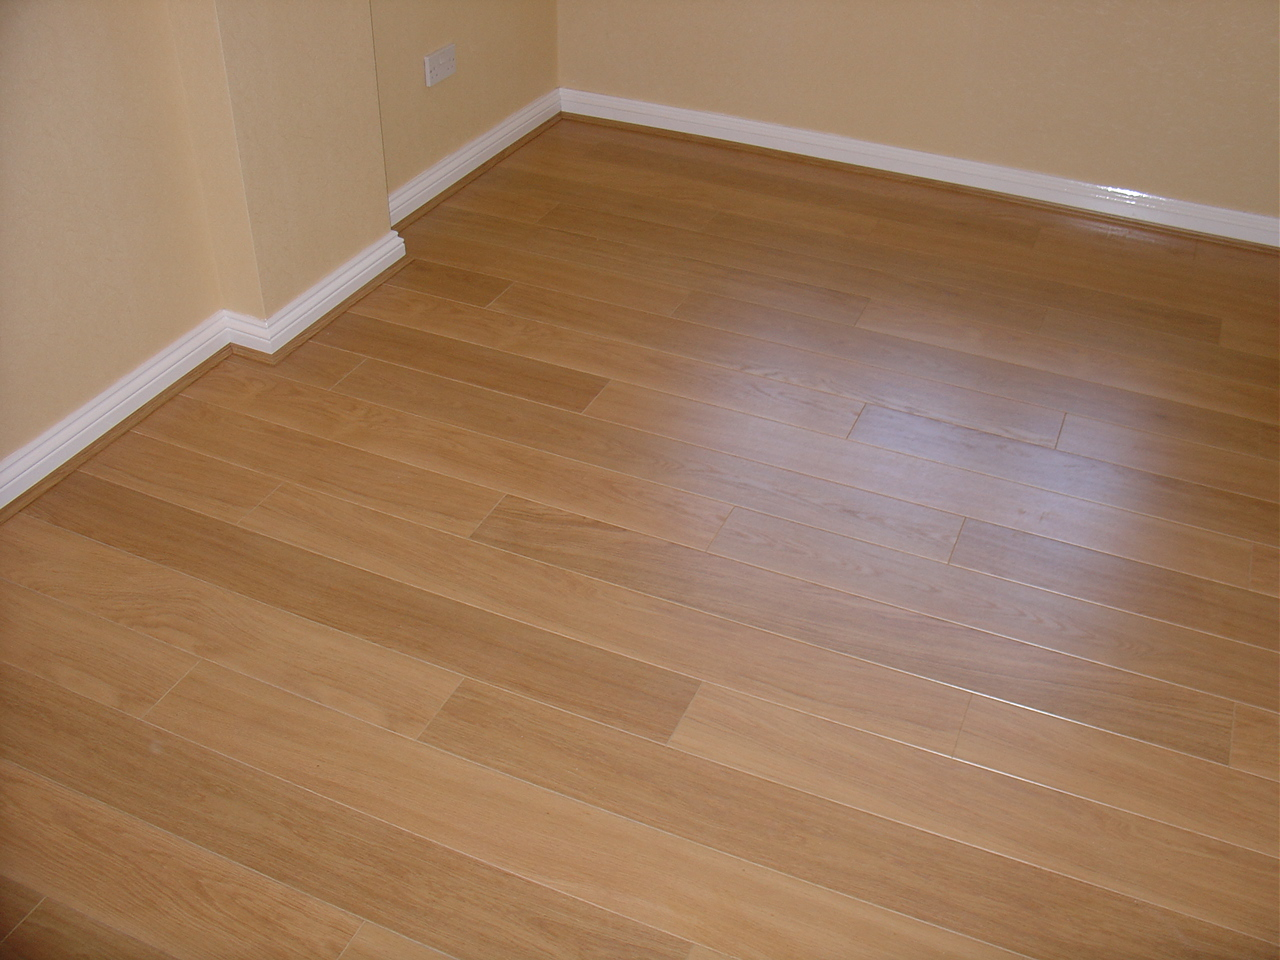 Laminate flooring source laminate flooring for Floating laminate floor